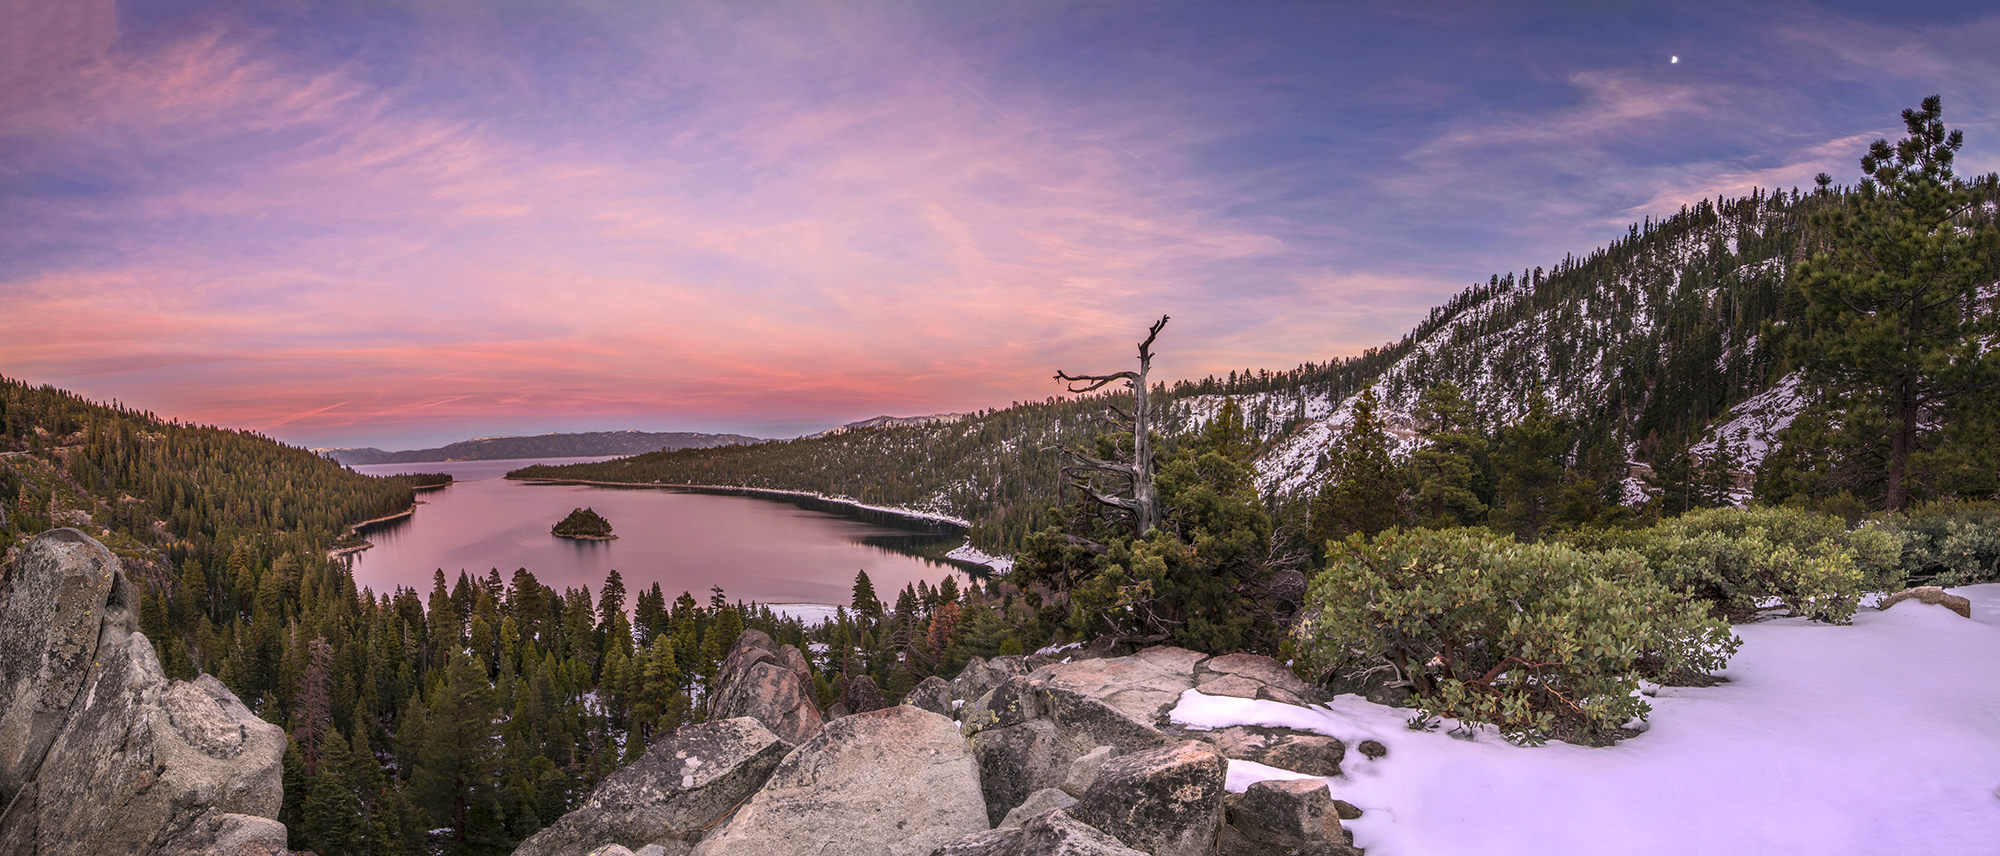 emerald bay sunset pano 11-18